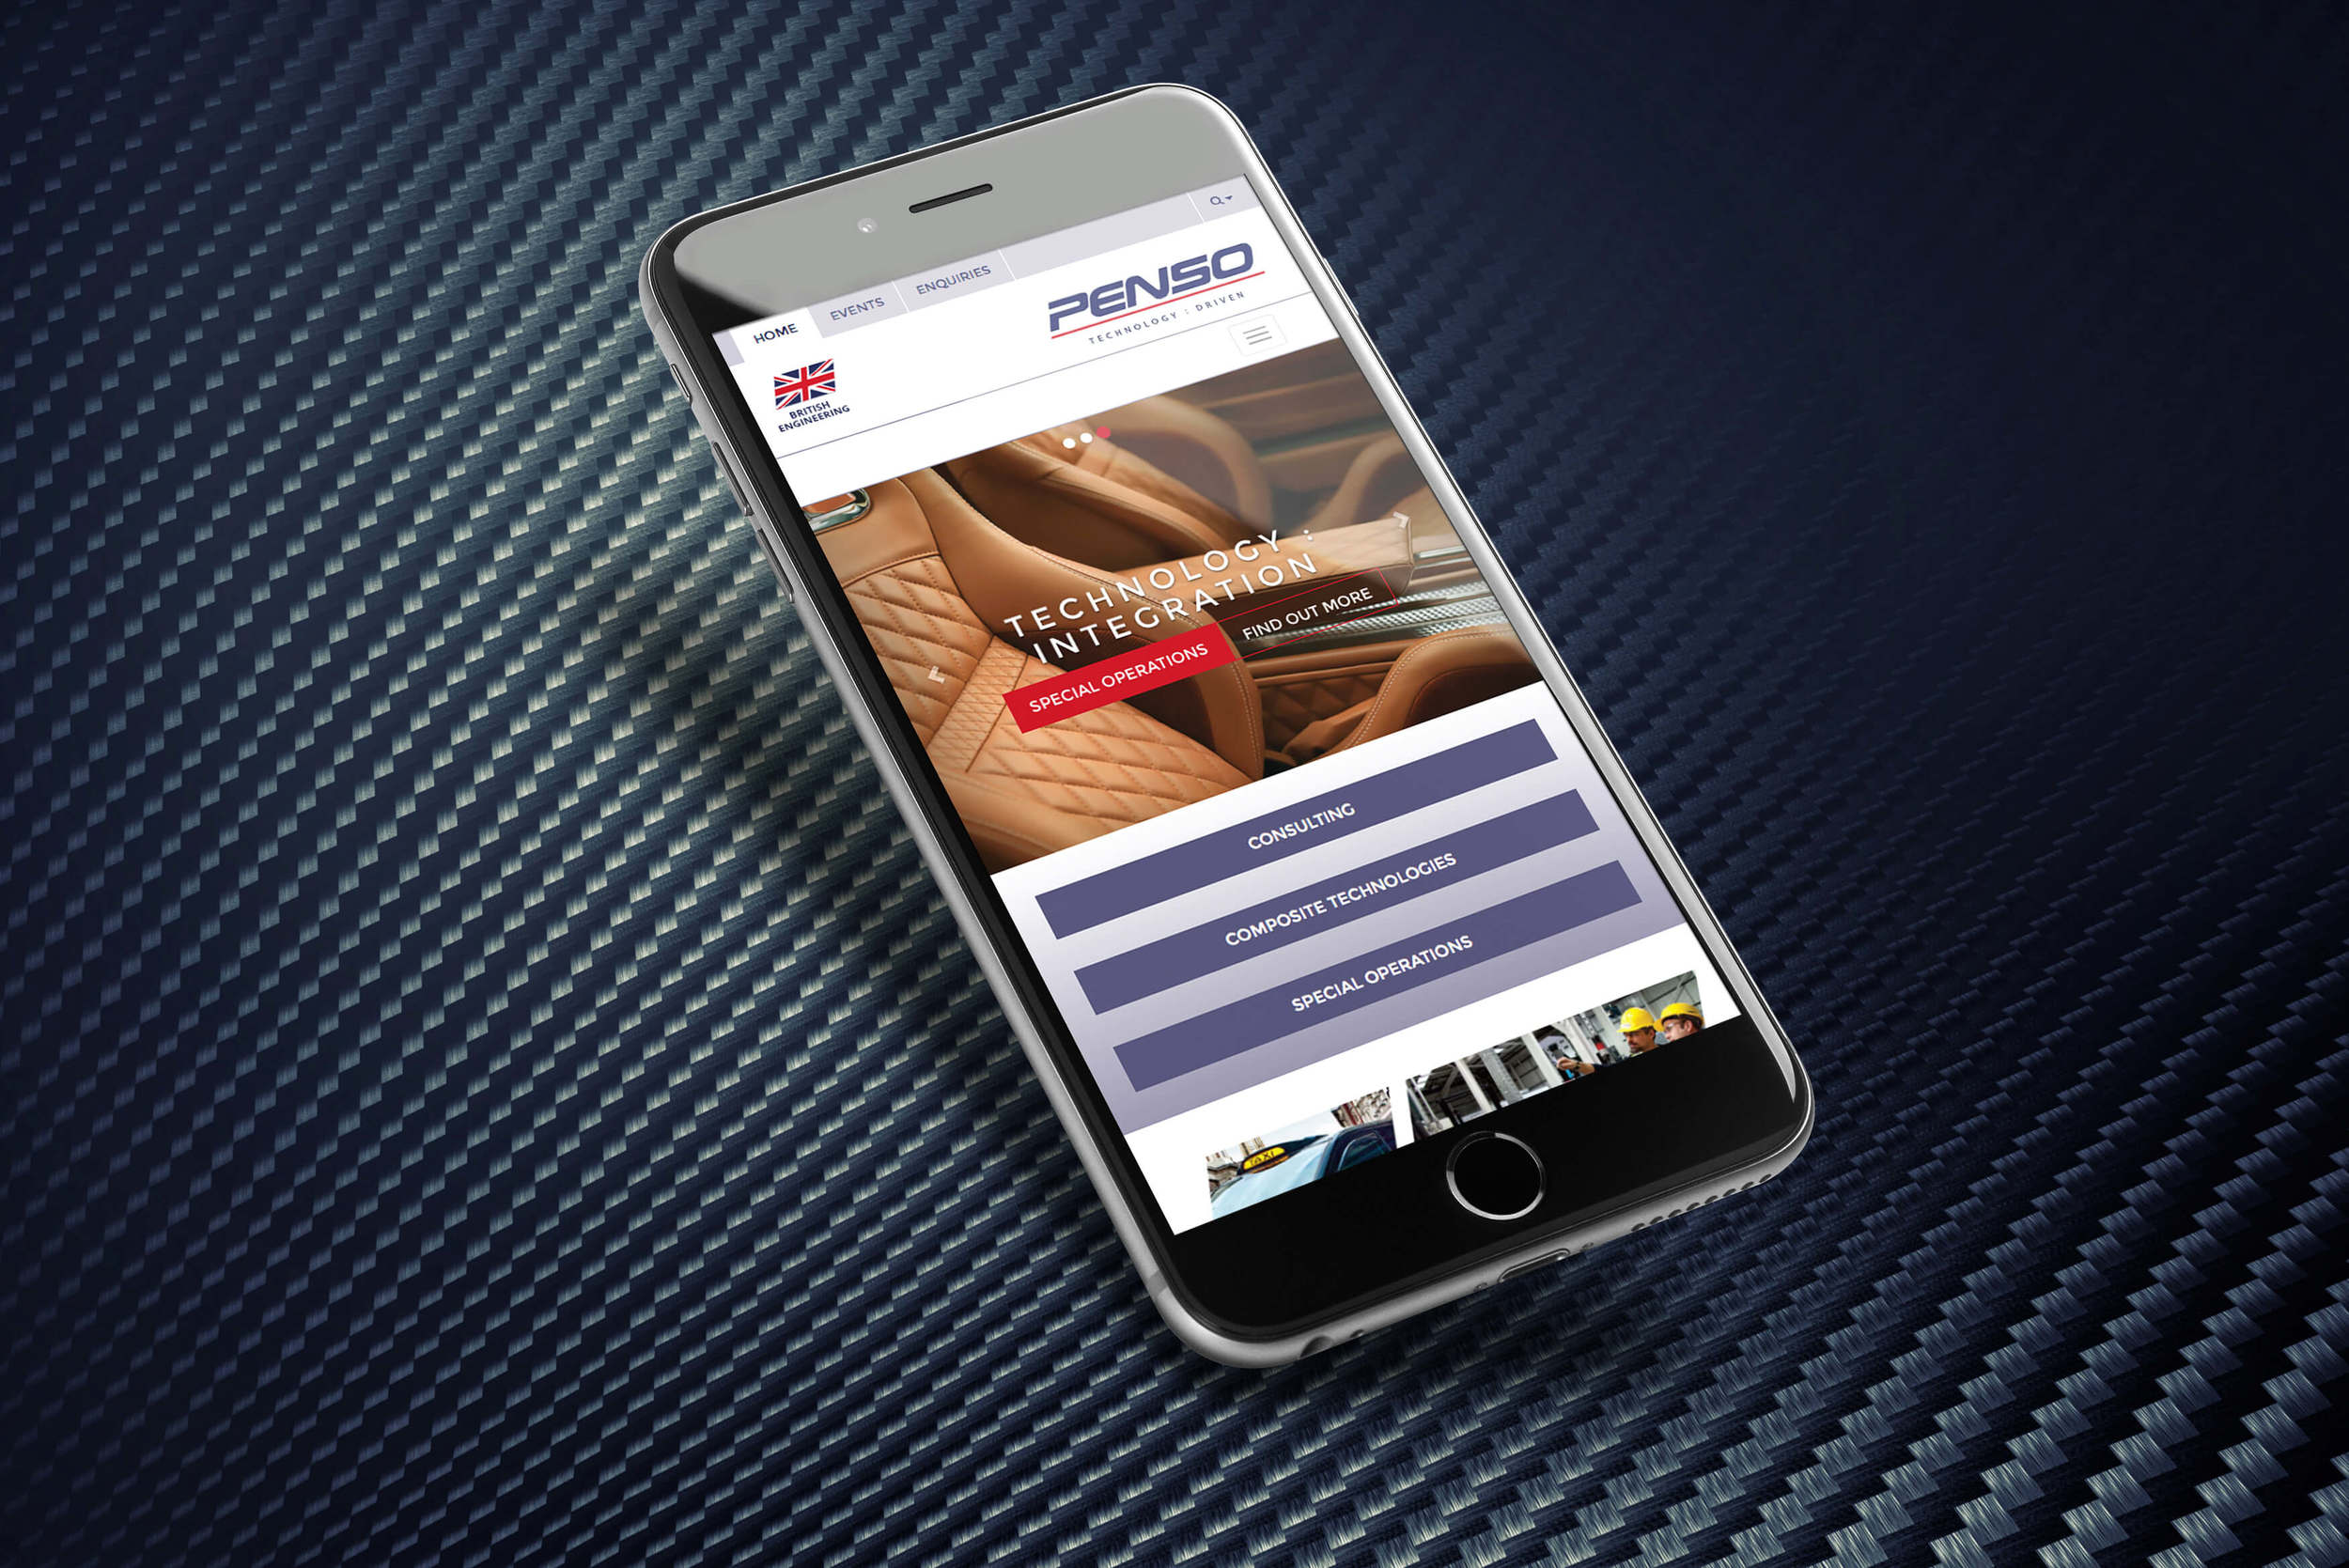 A slick and professional and an easy-to-use mobile platform.